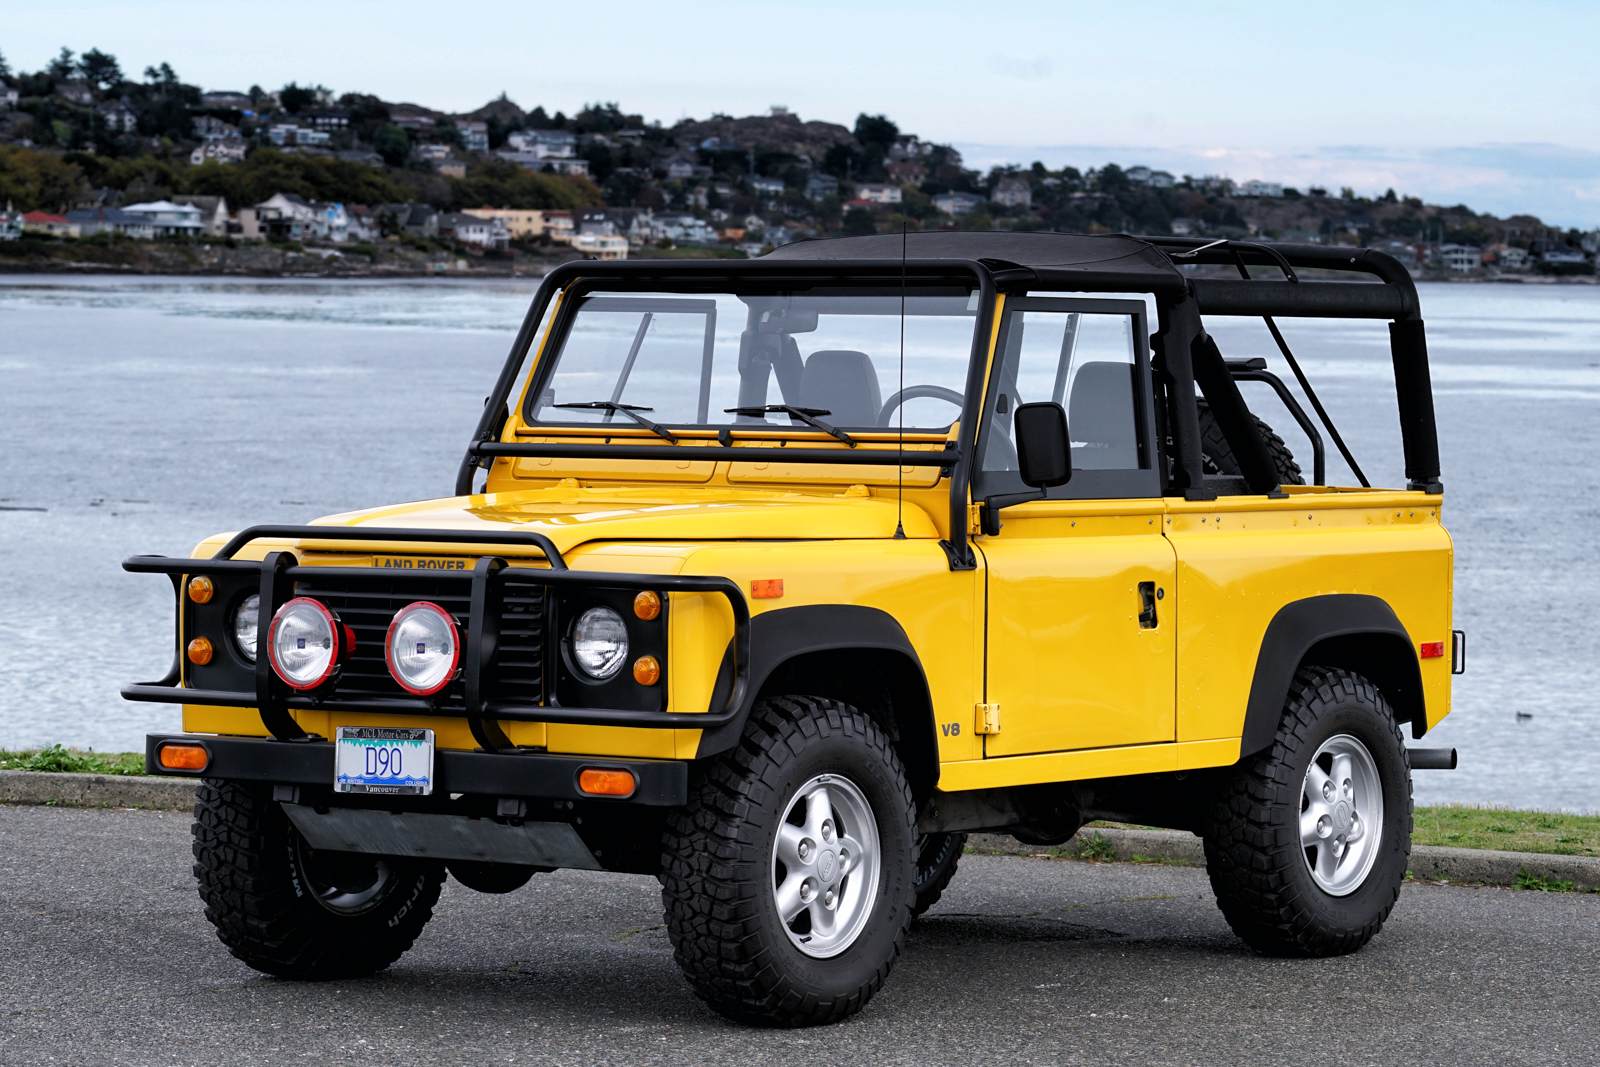 1994 Land Rover Defender 90 NAS #58 for sale